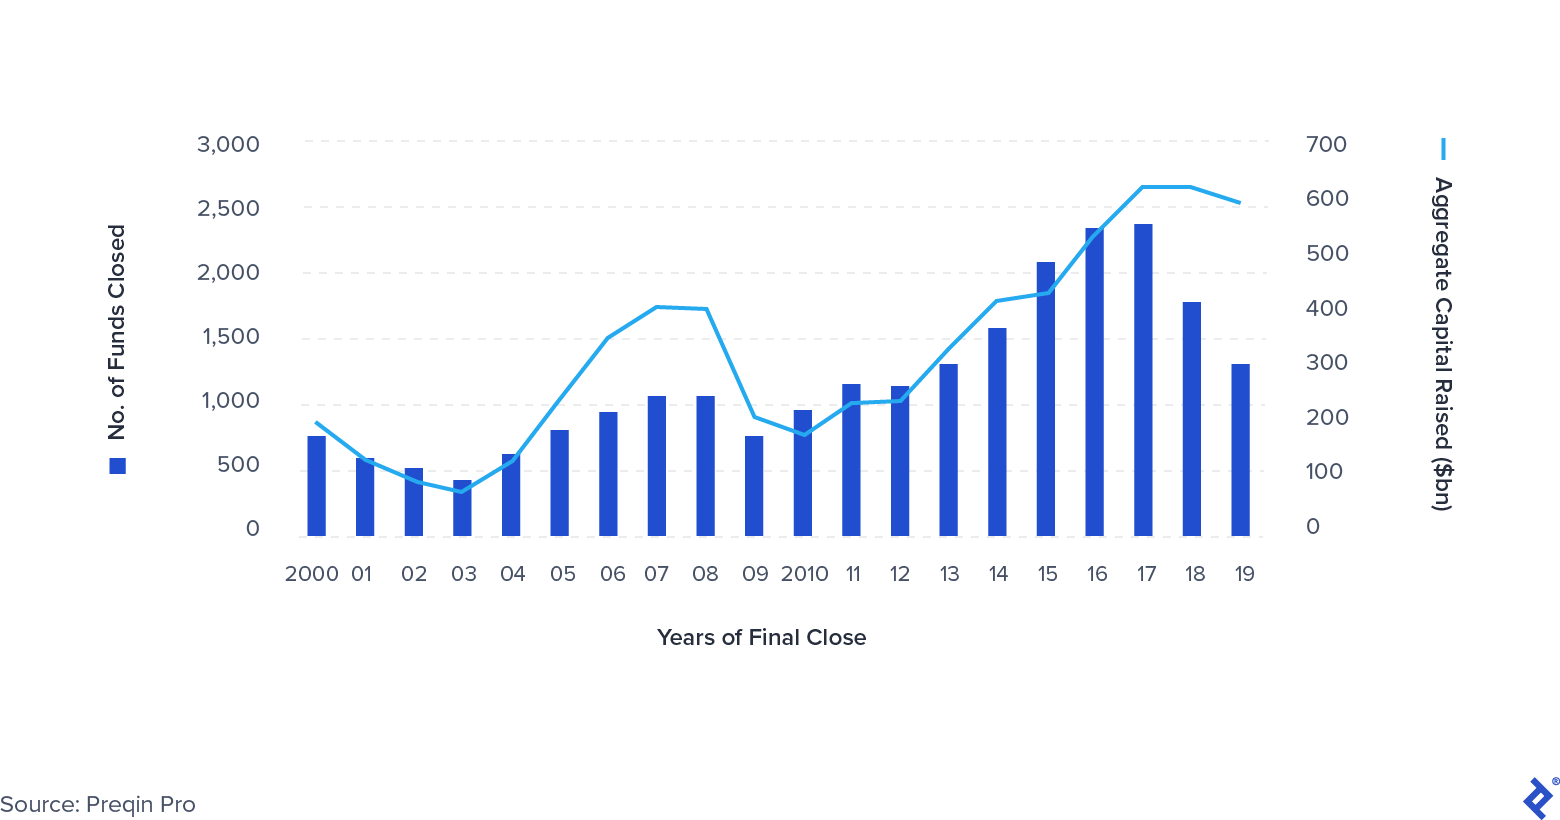 Global Private Equity Fundraising 2000-2019